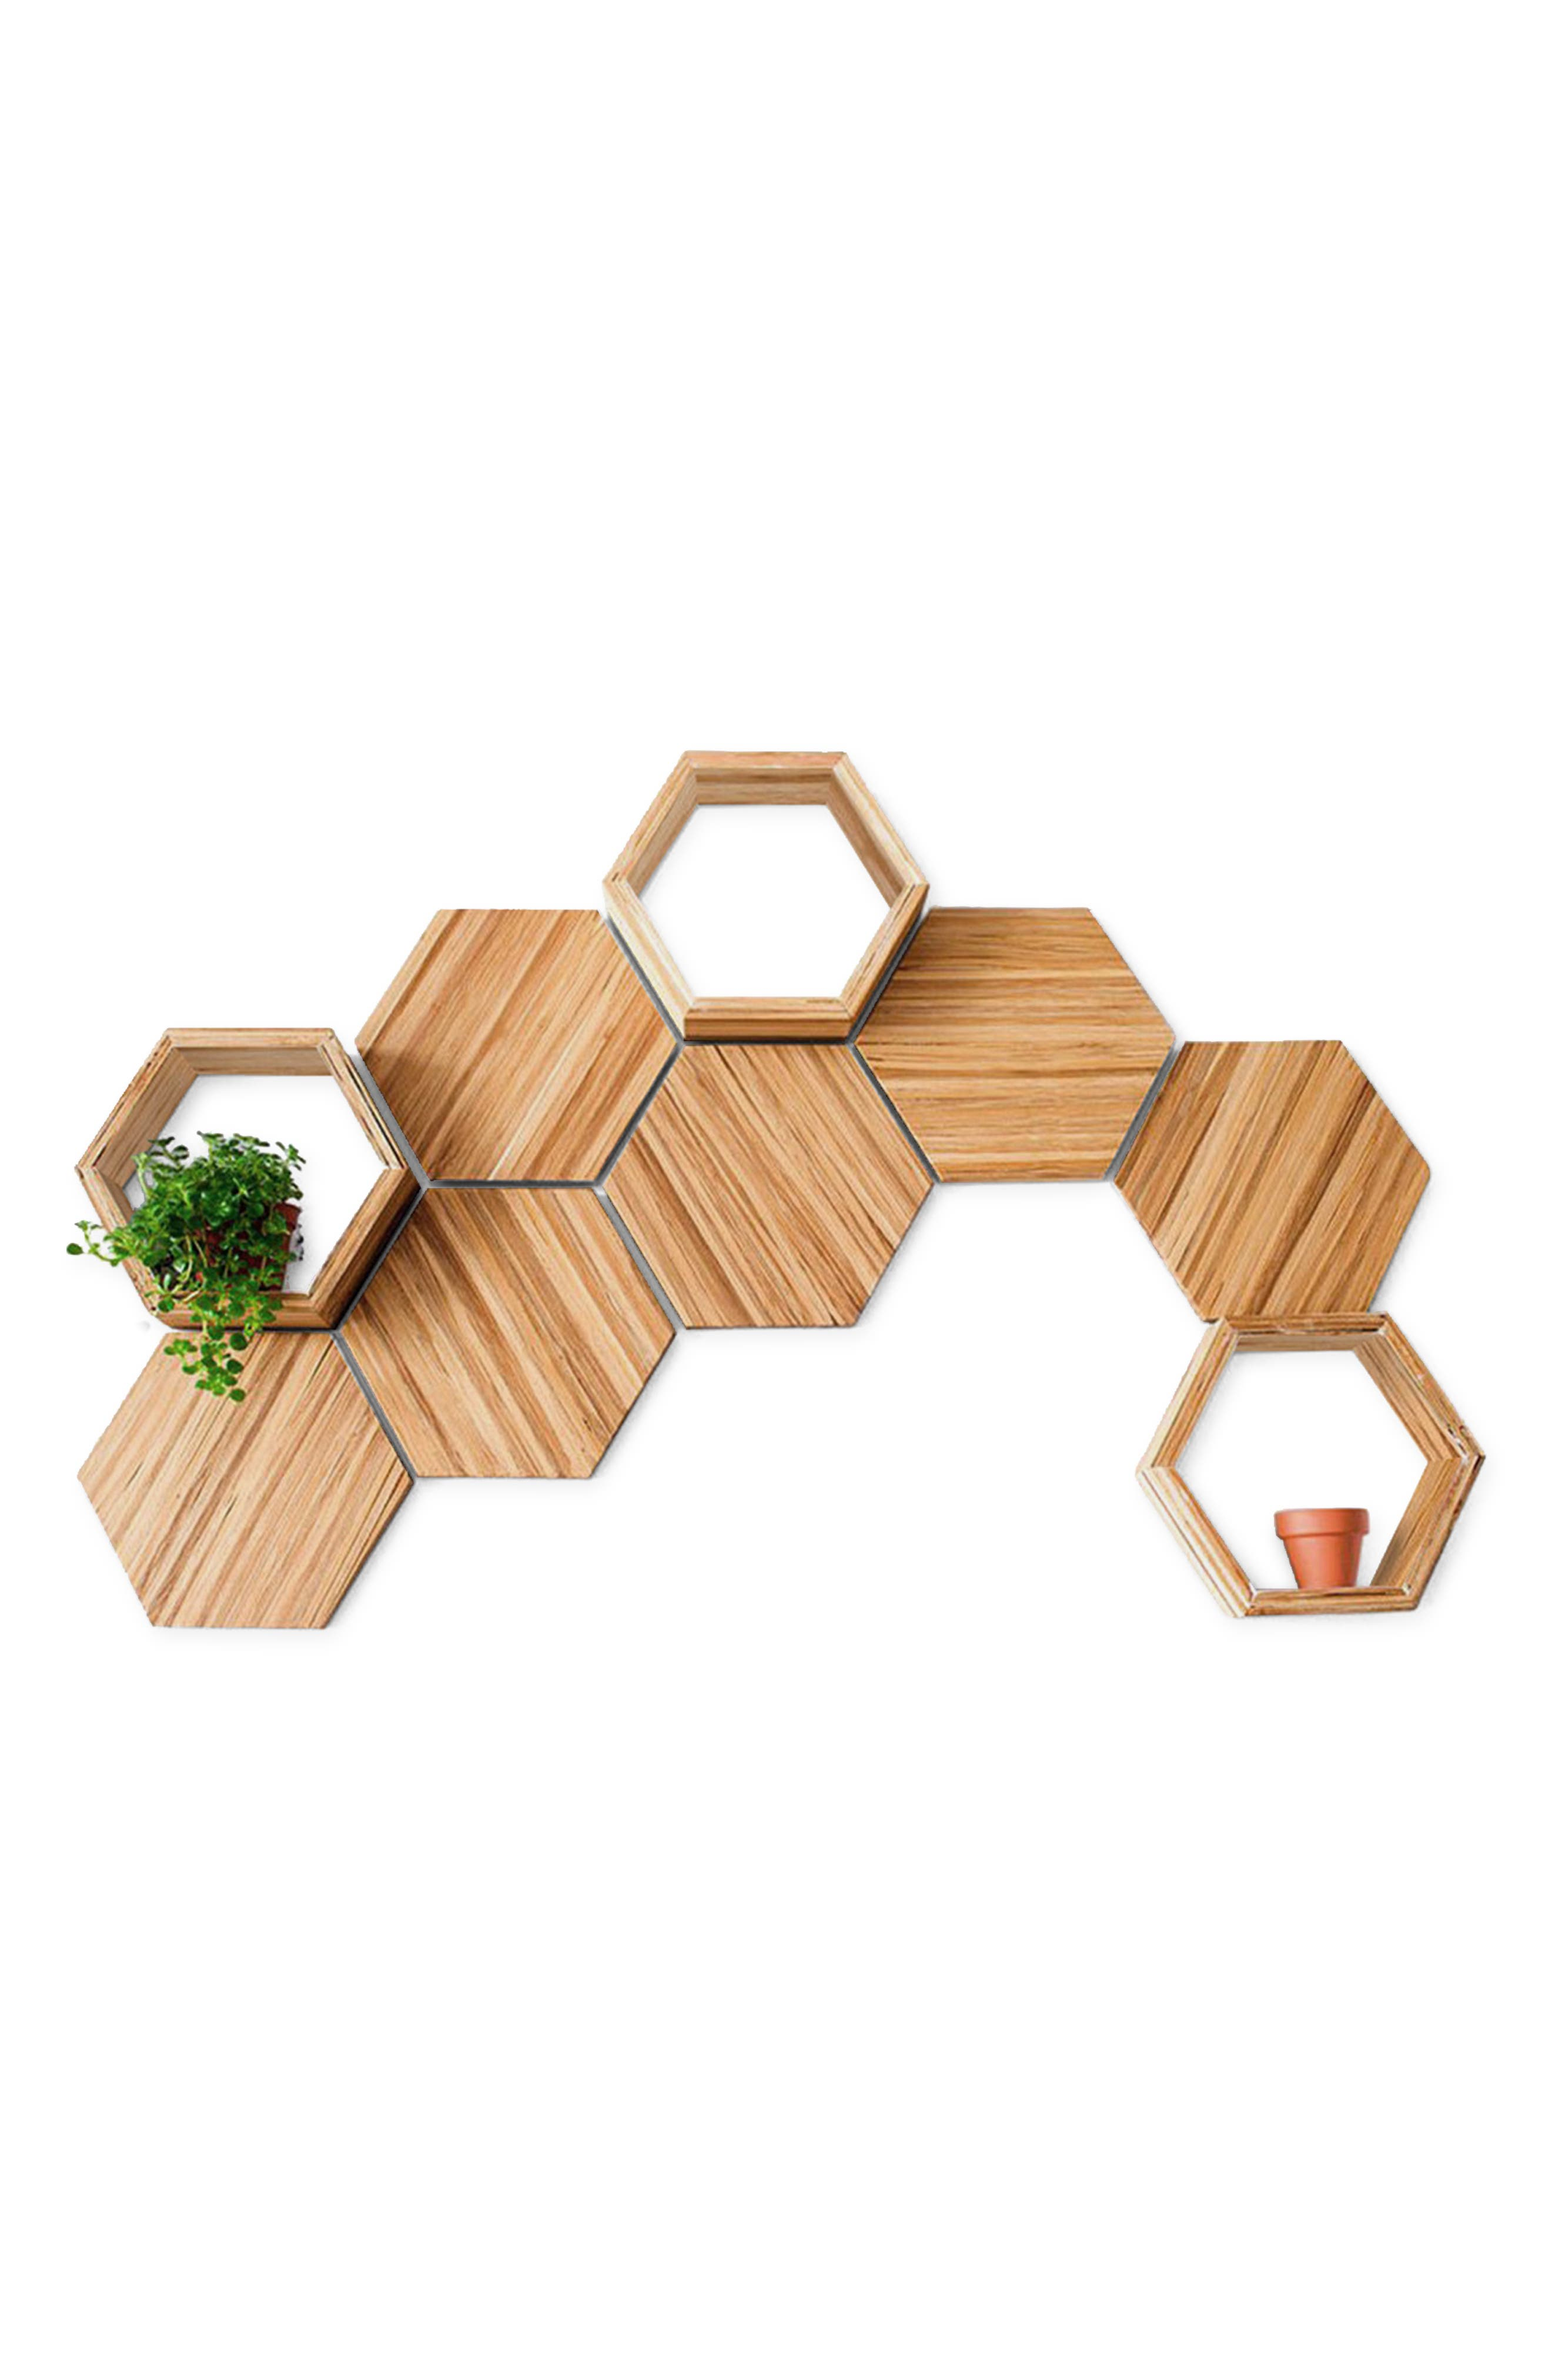 Create your own eye-catching wall decor with this set of nine modular recycled-wood hexagonal pieces, perfect for showing off small plants. Style Name: Chopvalue 9-Piece Wall Decor Set. Style Number: 6137636. Available in stores.